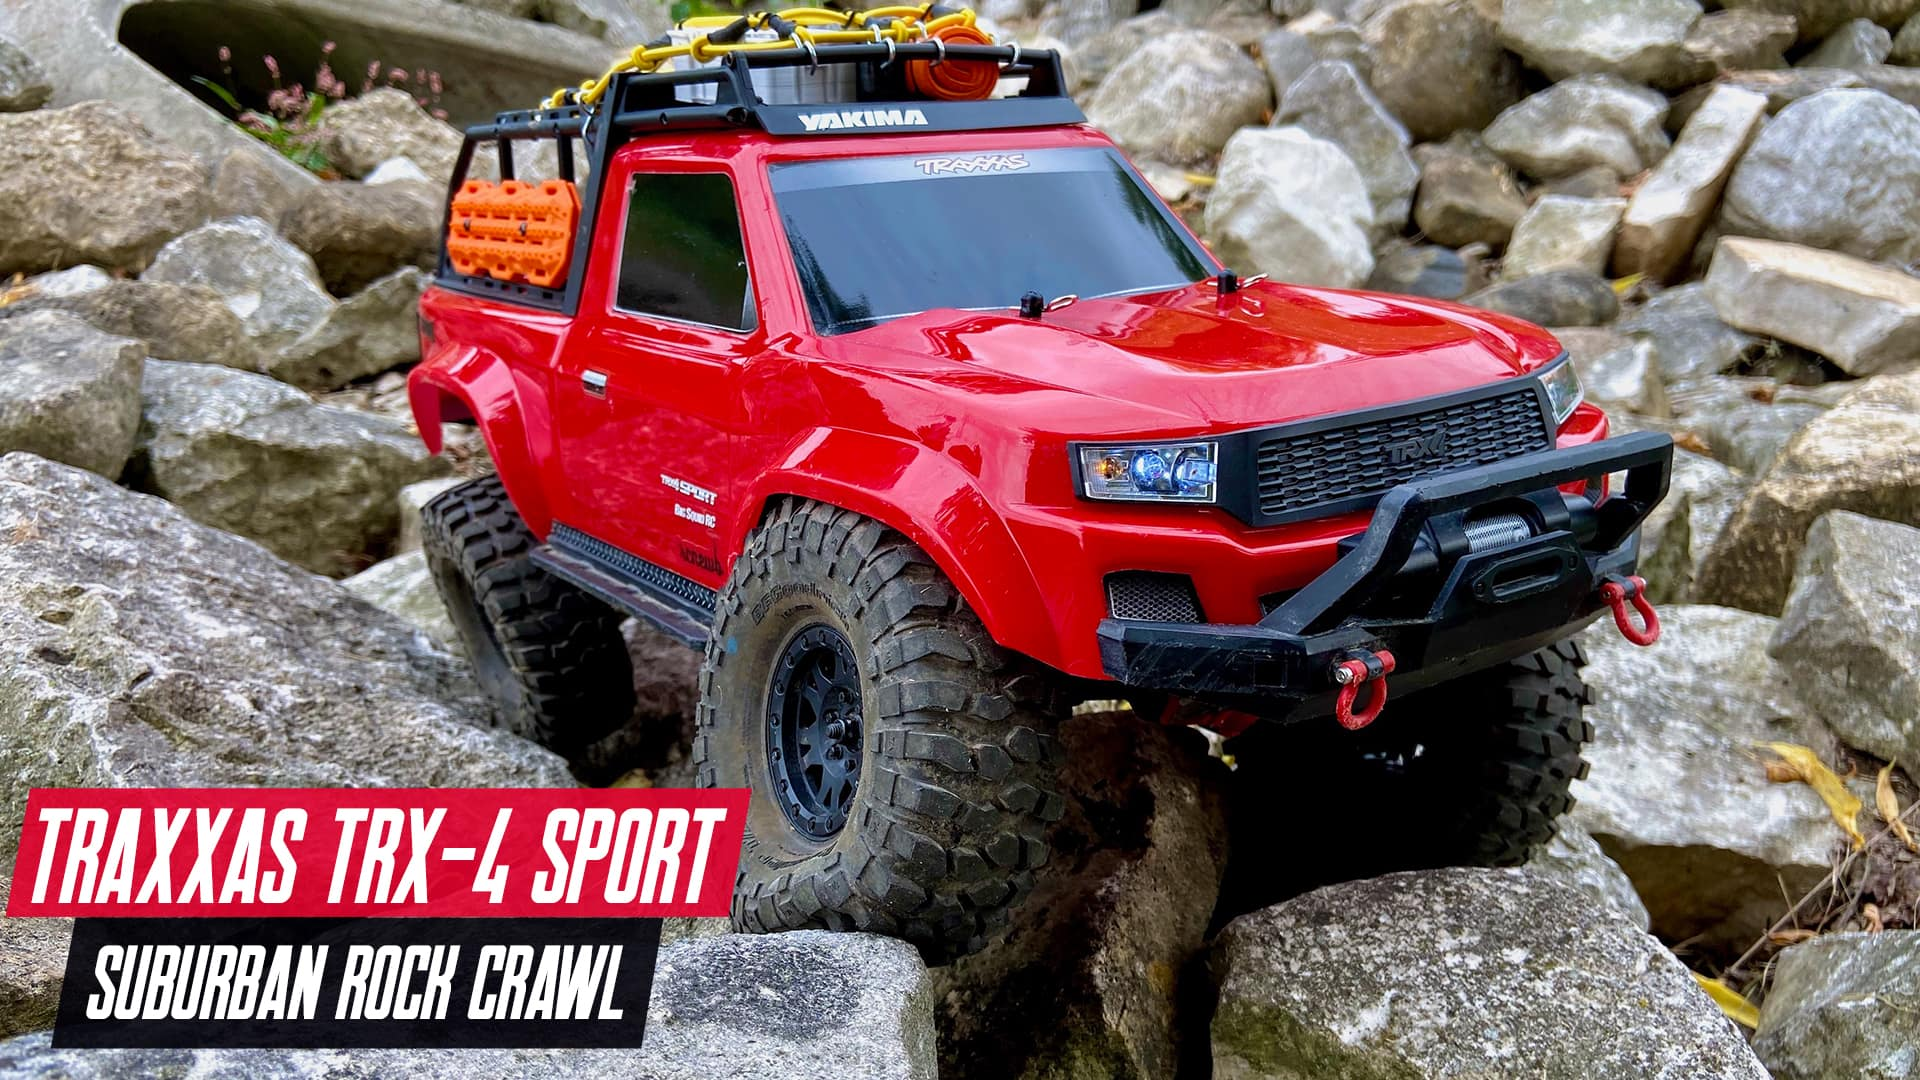 A Rock n' Roll Adventure with the Traxxas TRX-4 Sport [Video]